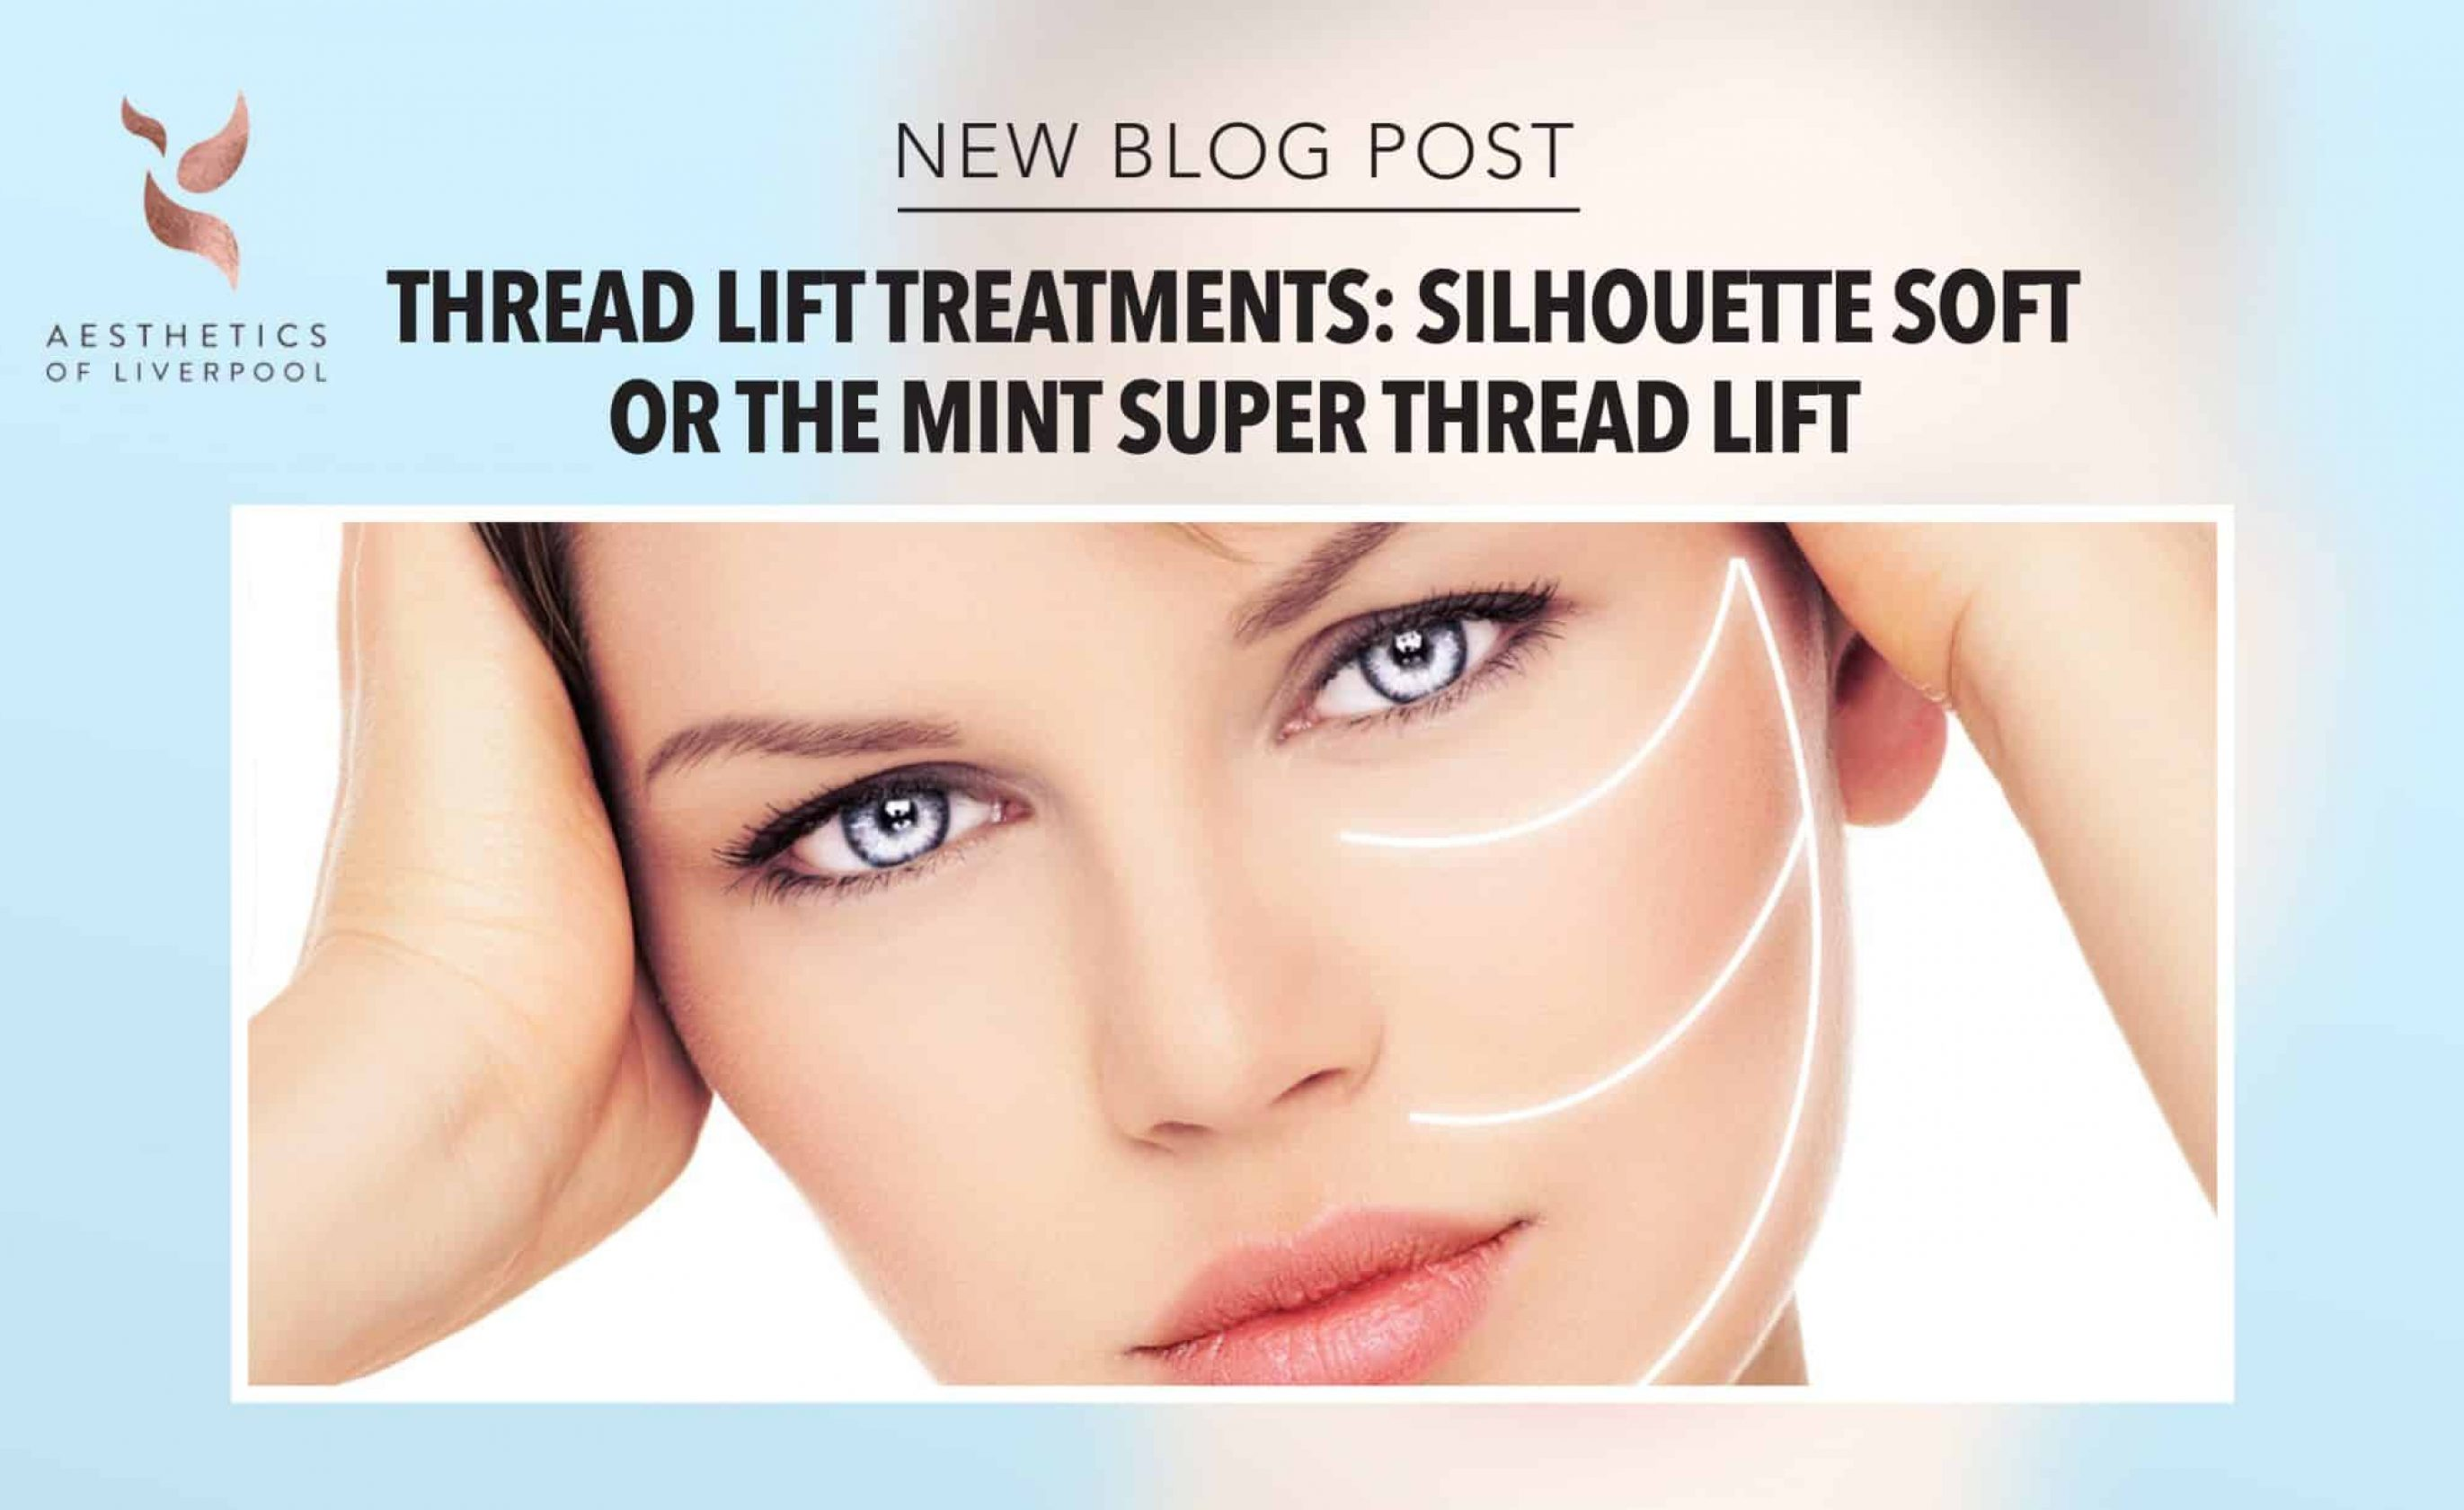 Silhouette Soft Or The MINT Super Thread Lift